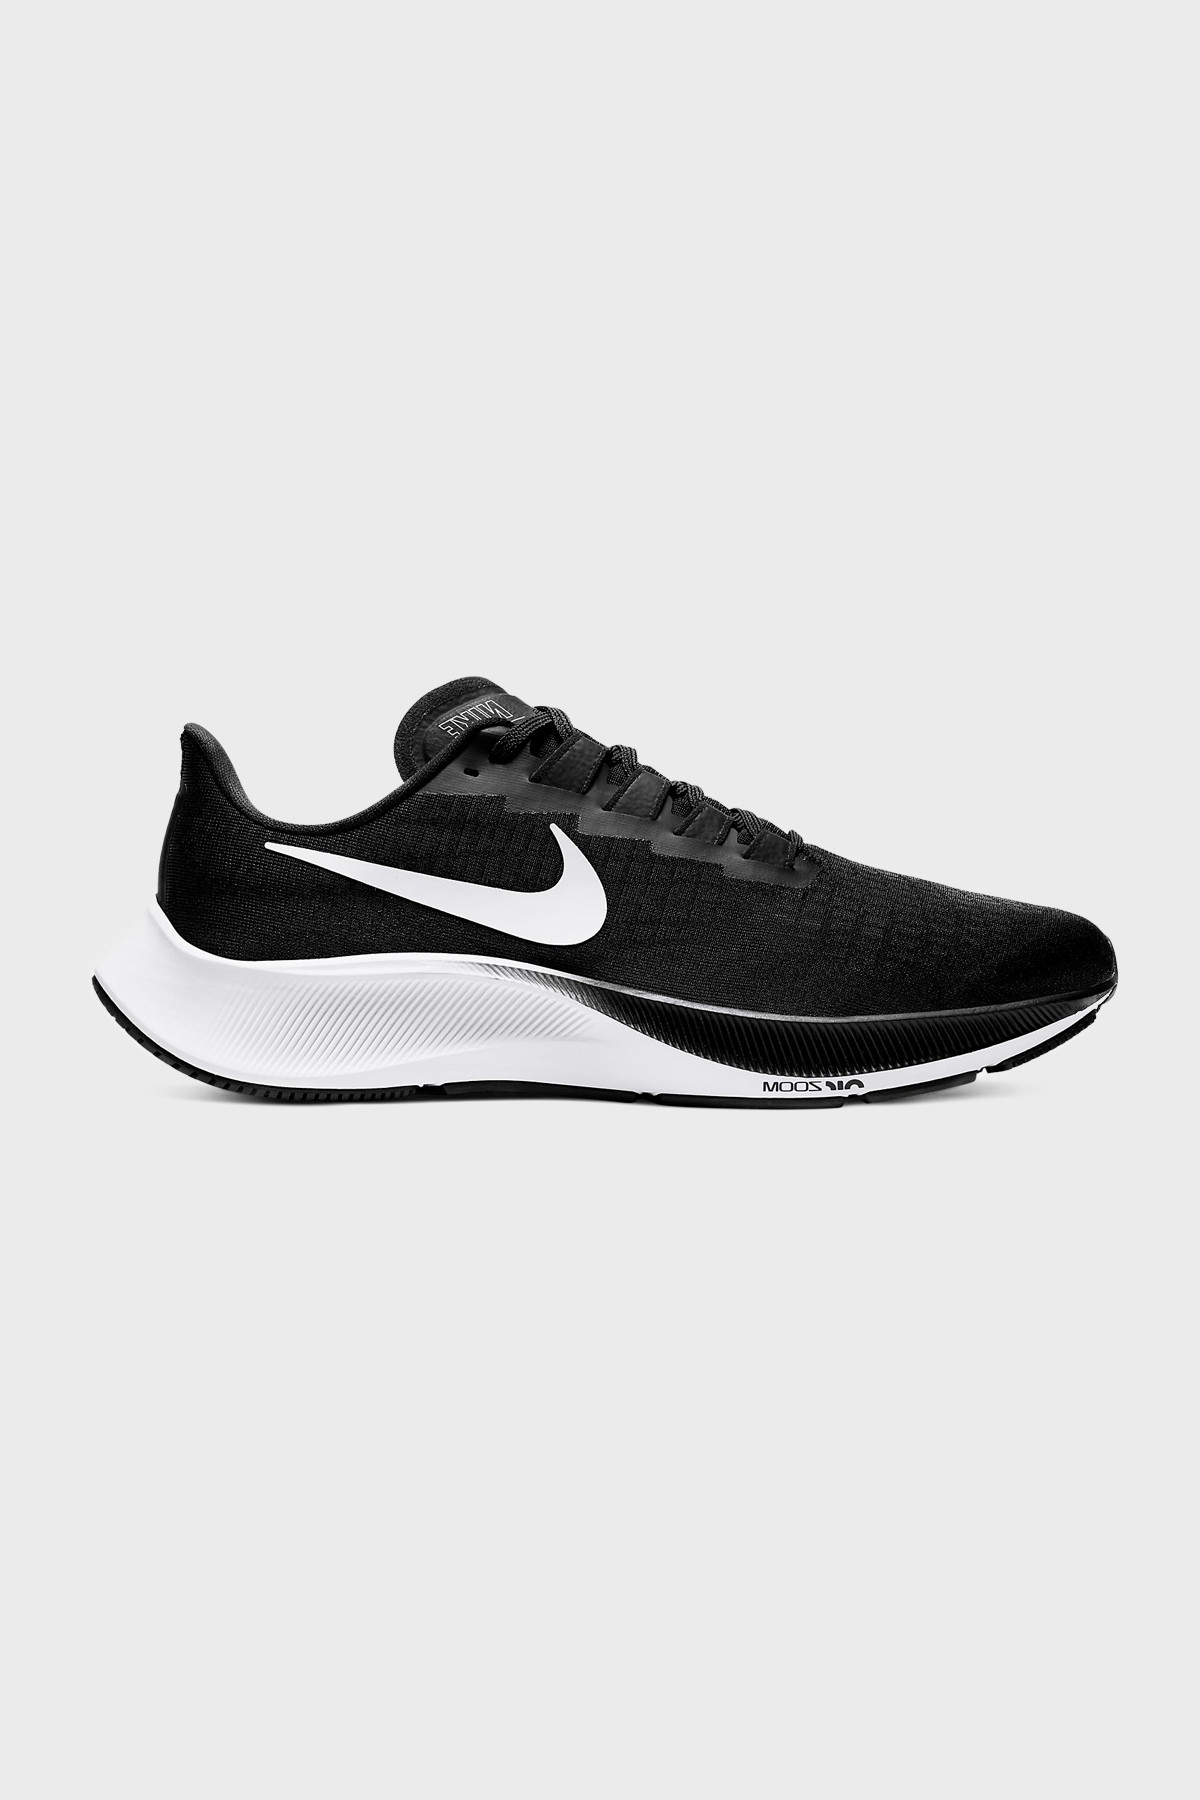 Nike - zoom pegasus 37 - Black White